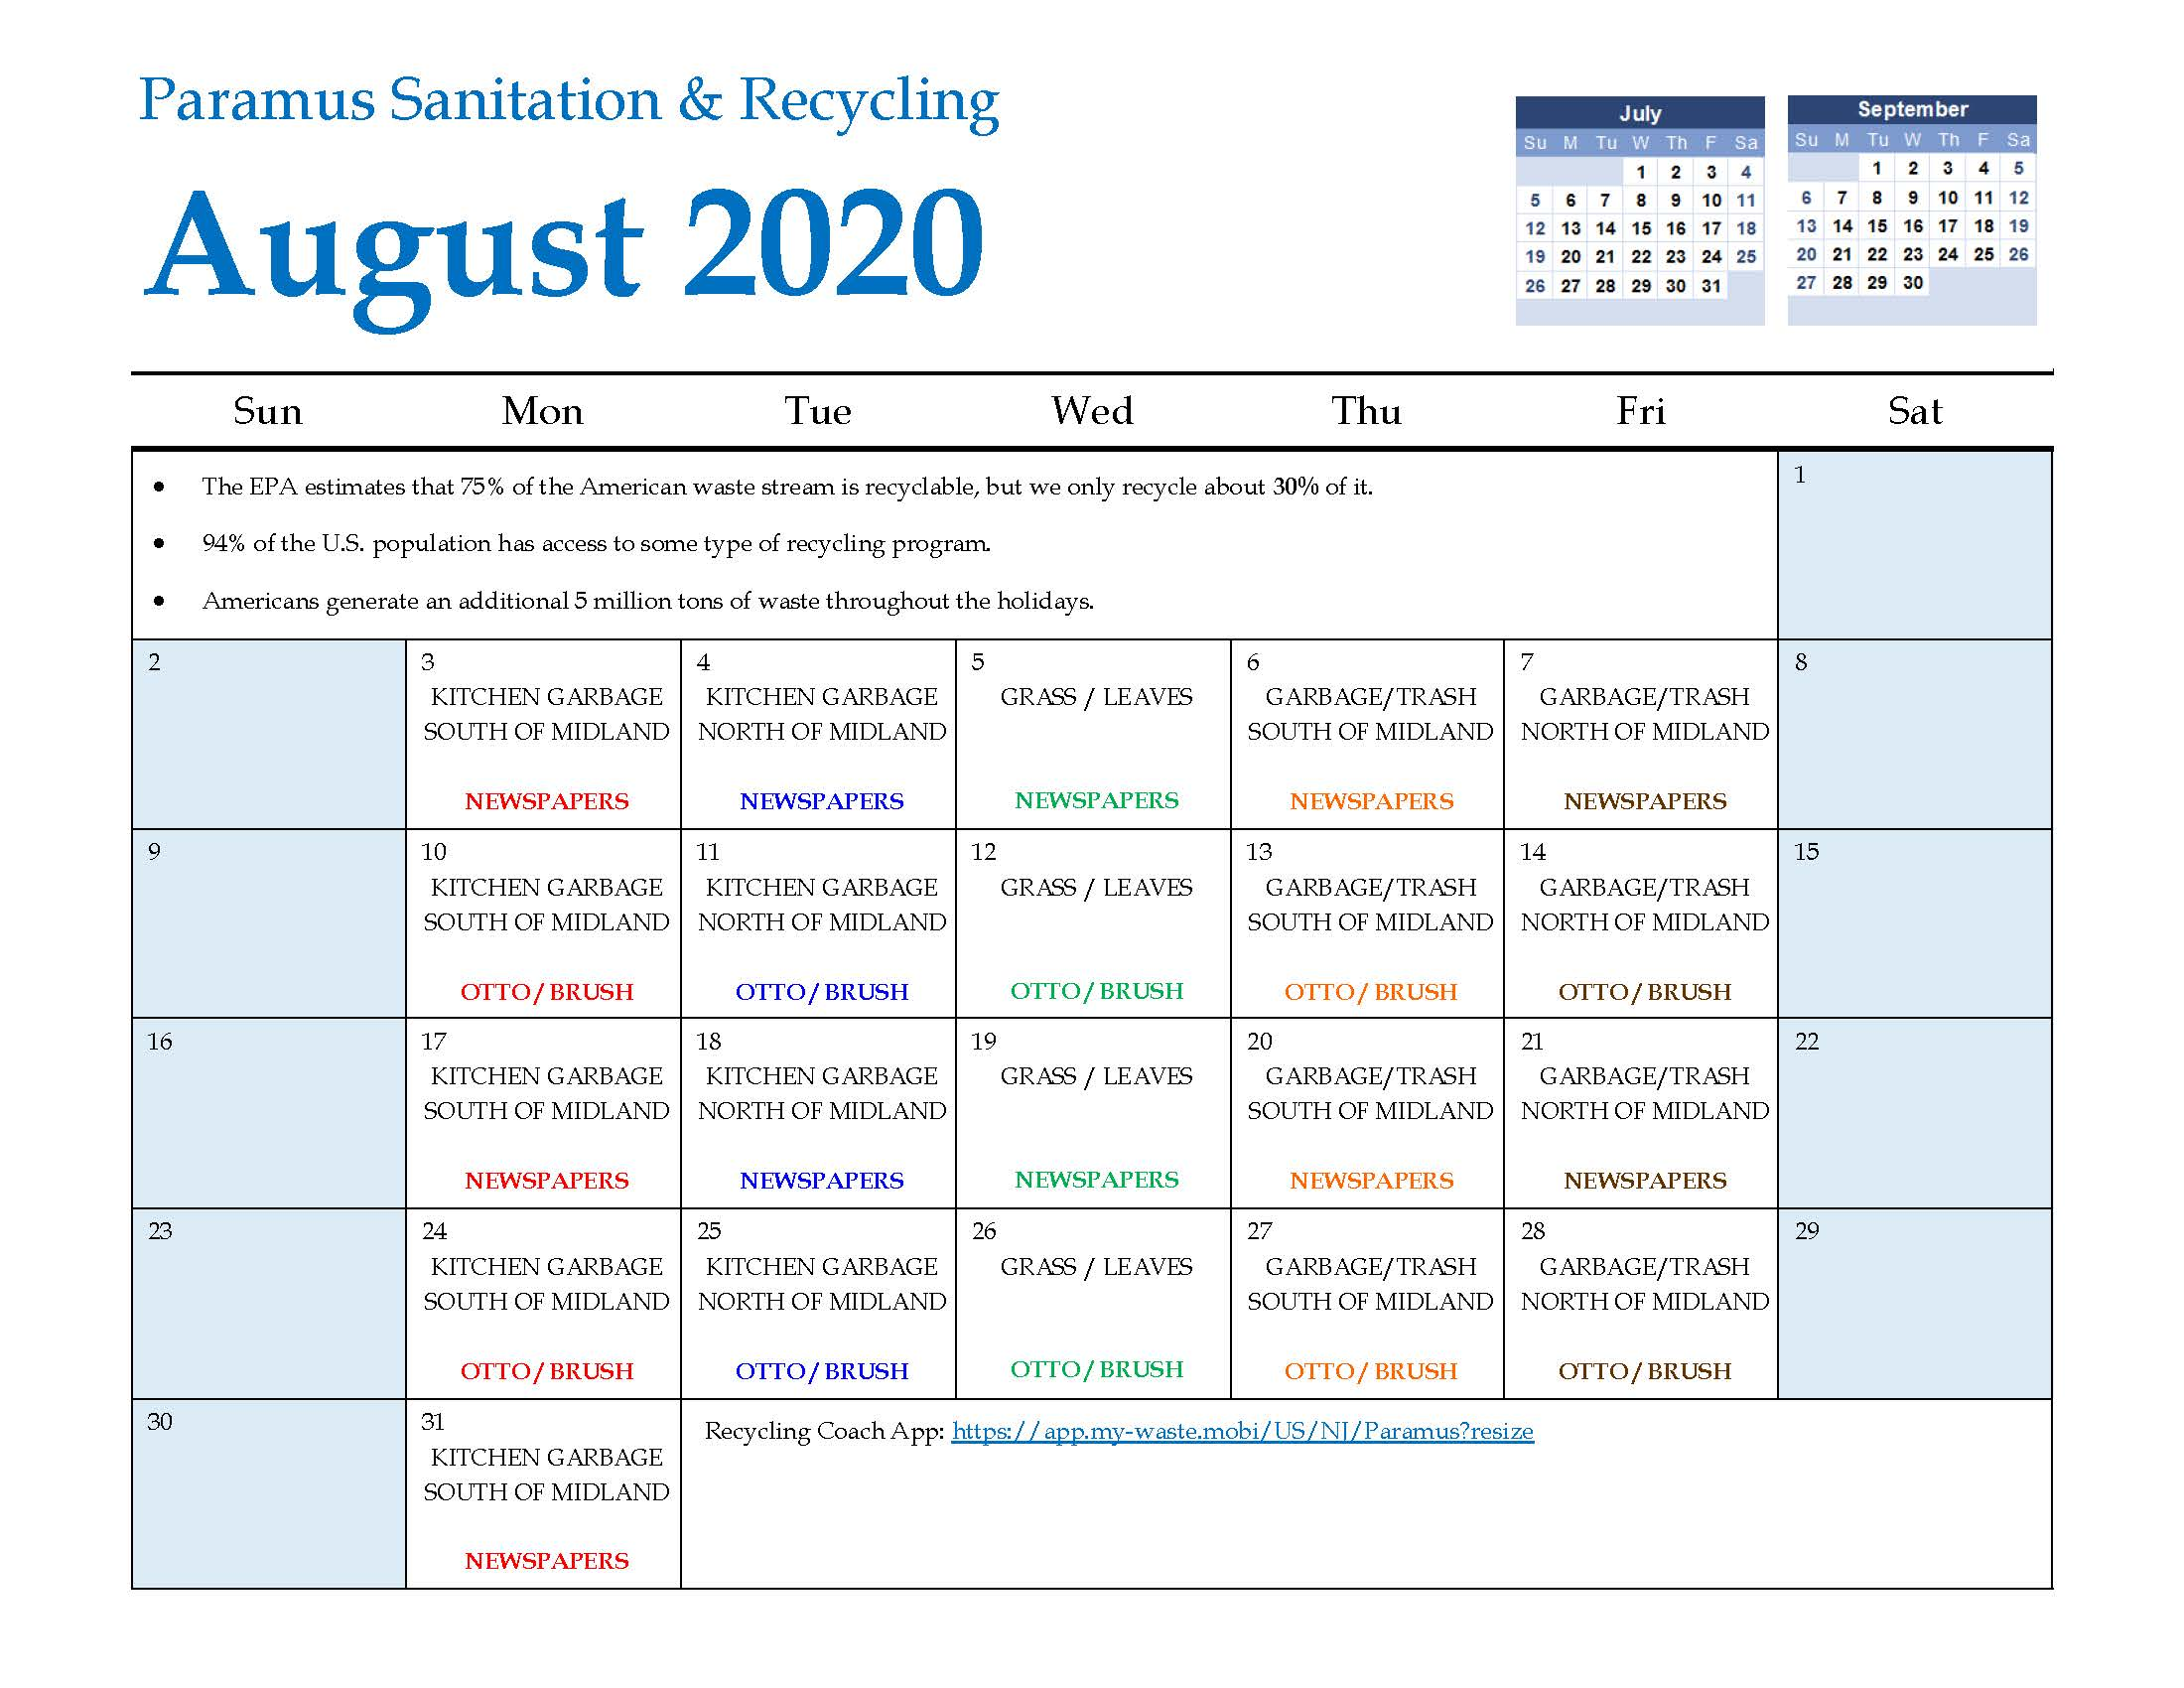 2020 Paramus Recycling Calendar August